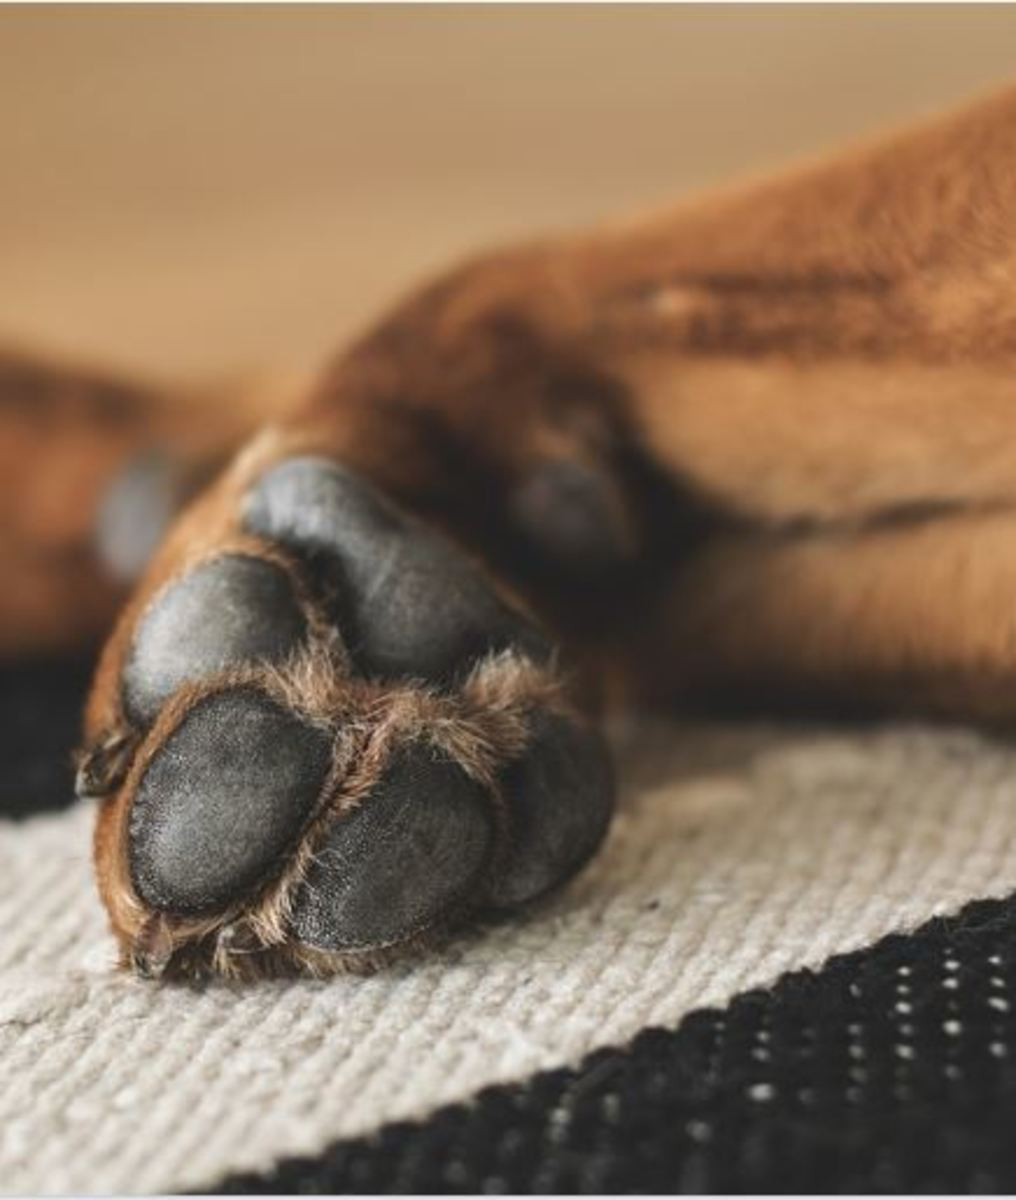 Home Remedies for Steys on a Dog's Eyelids